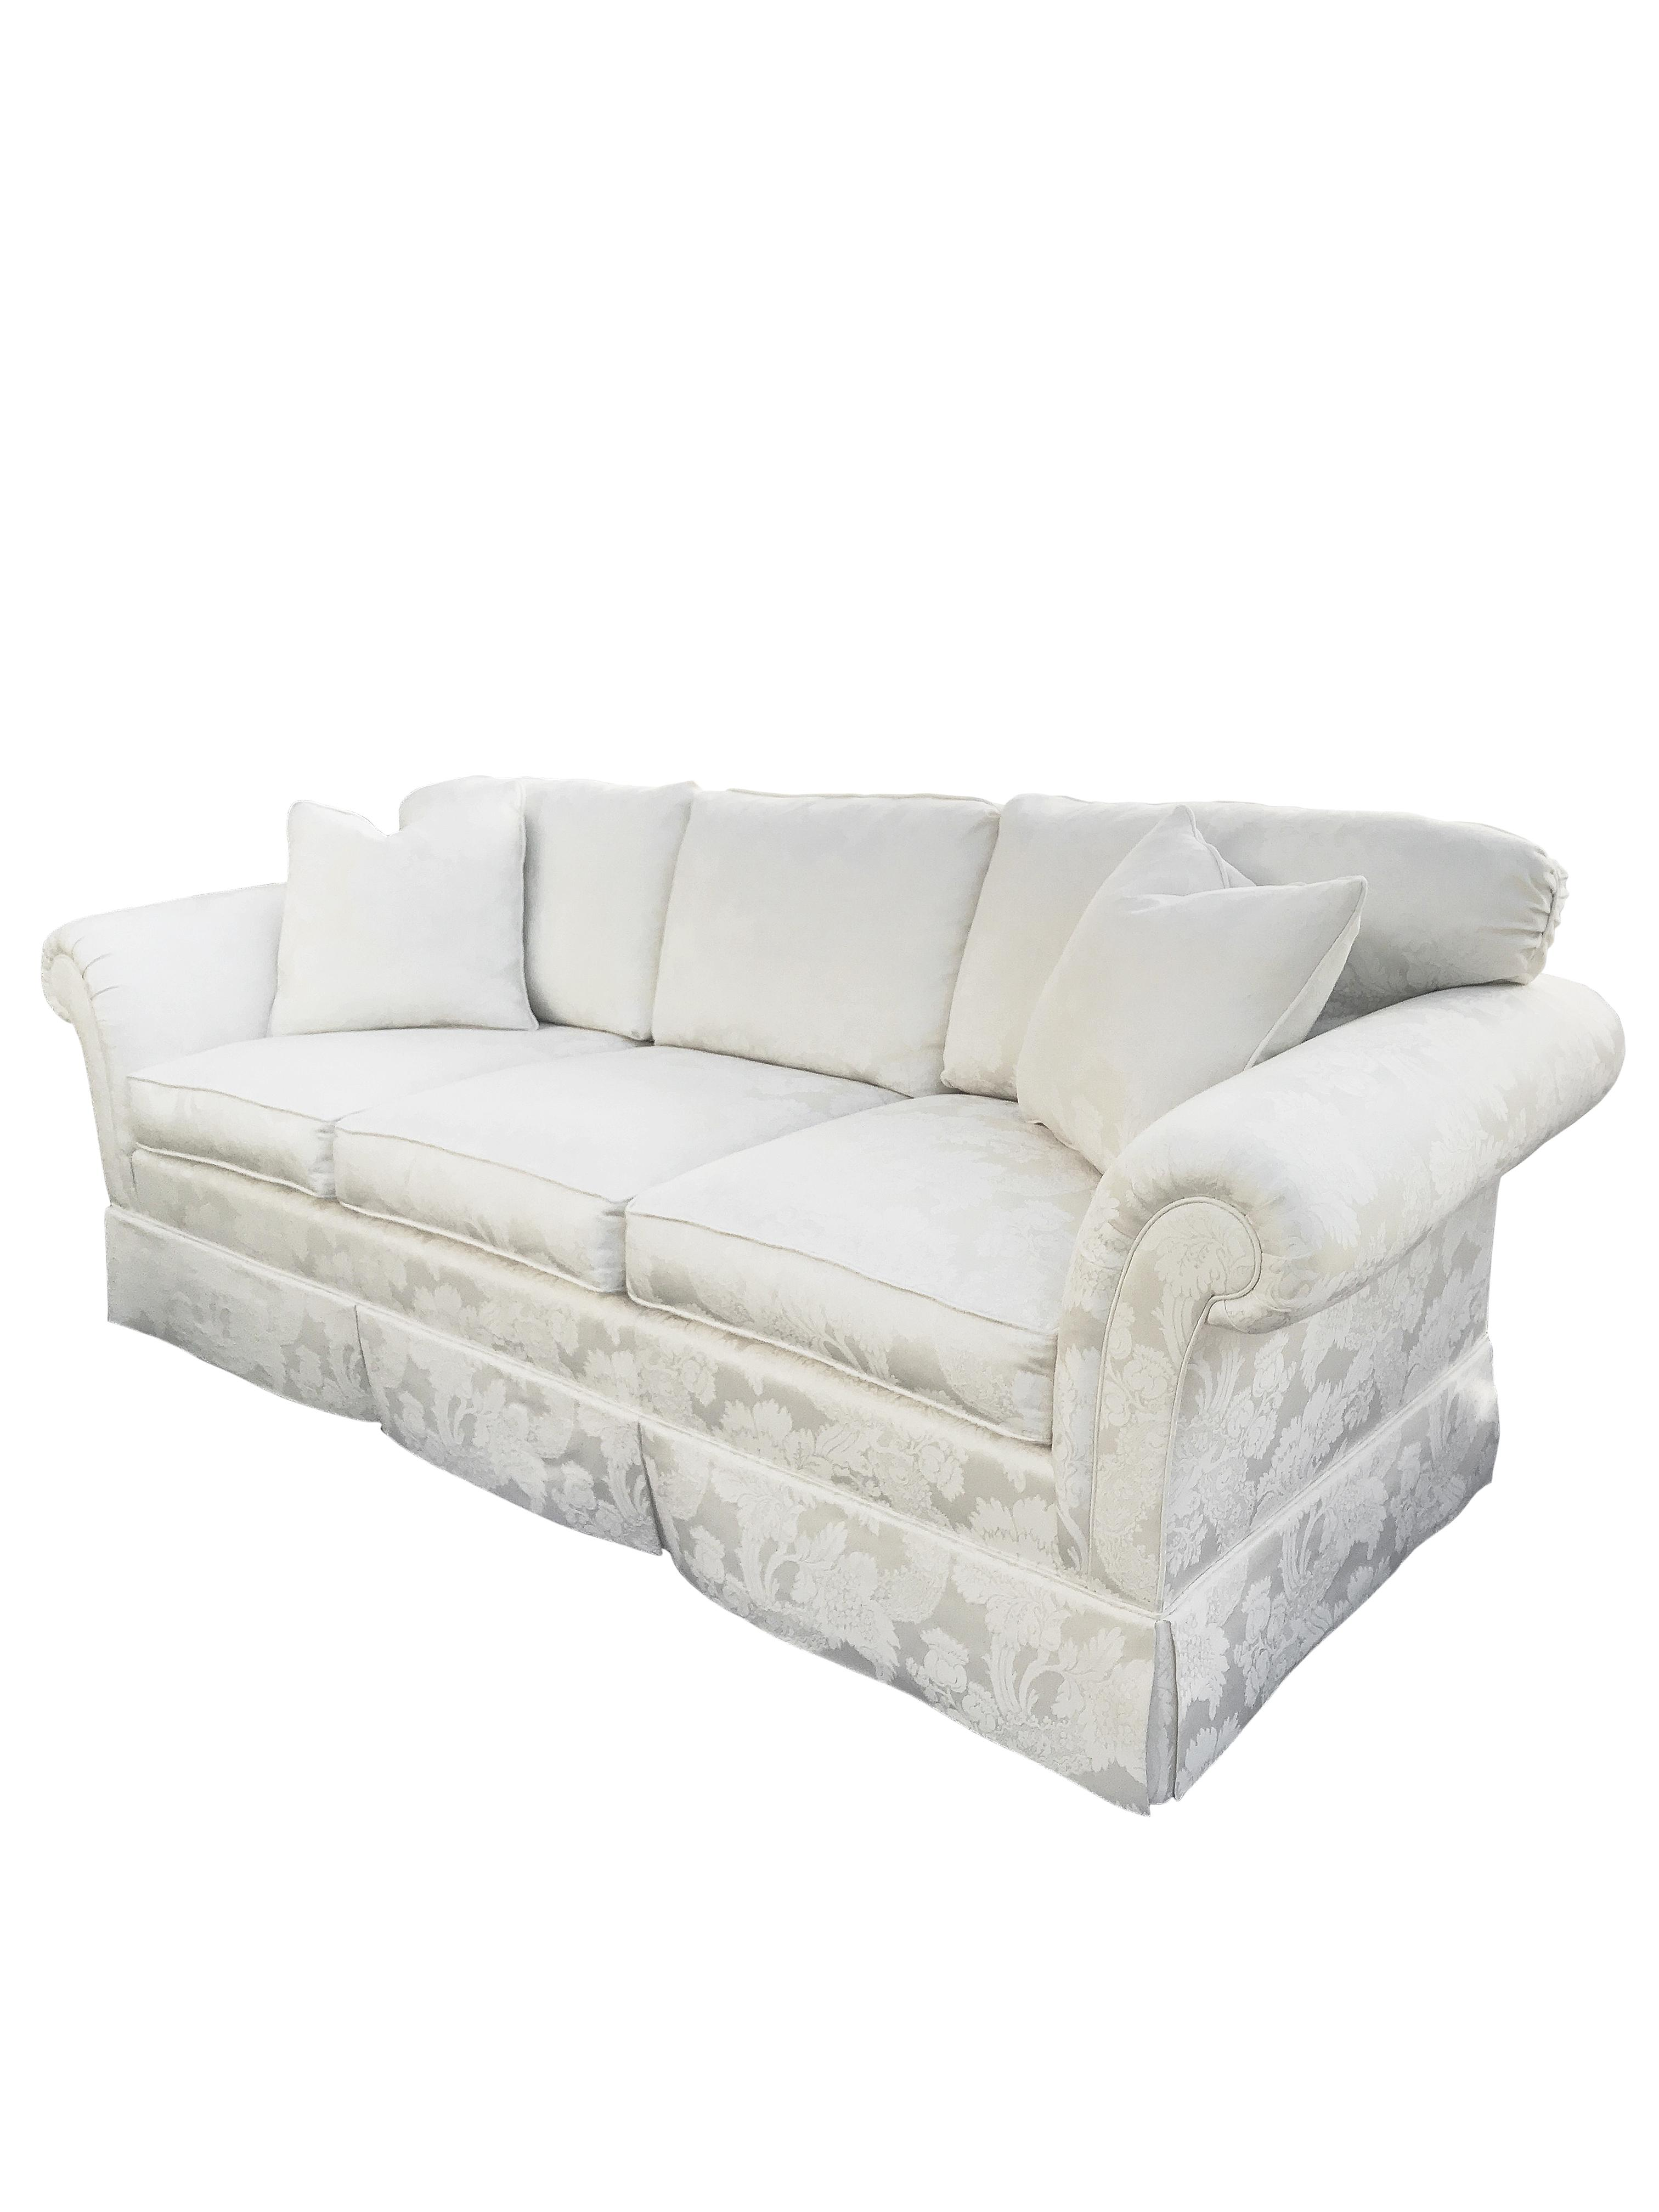 Kindel Furniture Ivory Feather Down Floral Chinoiserie Sofa   Image 2 Of 10